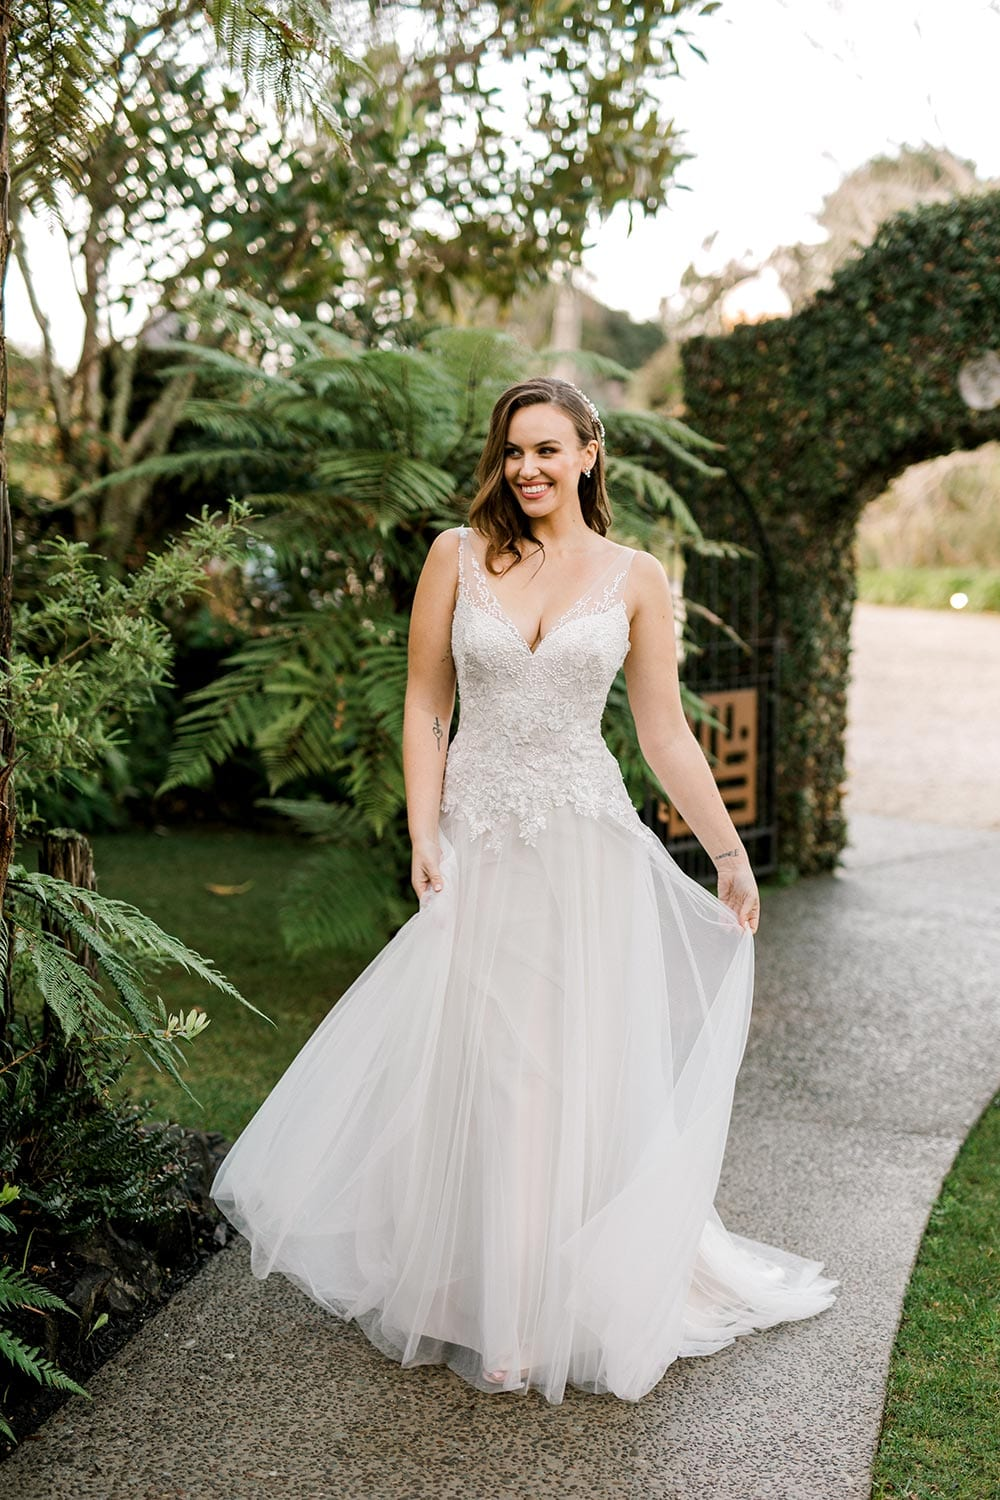 Hazel Wedding Dress from Vinka Design. Wedding dress with highly-sculptured bodice down to the hipline, at which point it gently flares into a beautiful and dreamy tulle skirt and train. Beautiful and delicate embroidery. Model walking with skirt flowing.